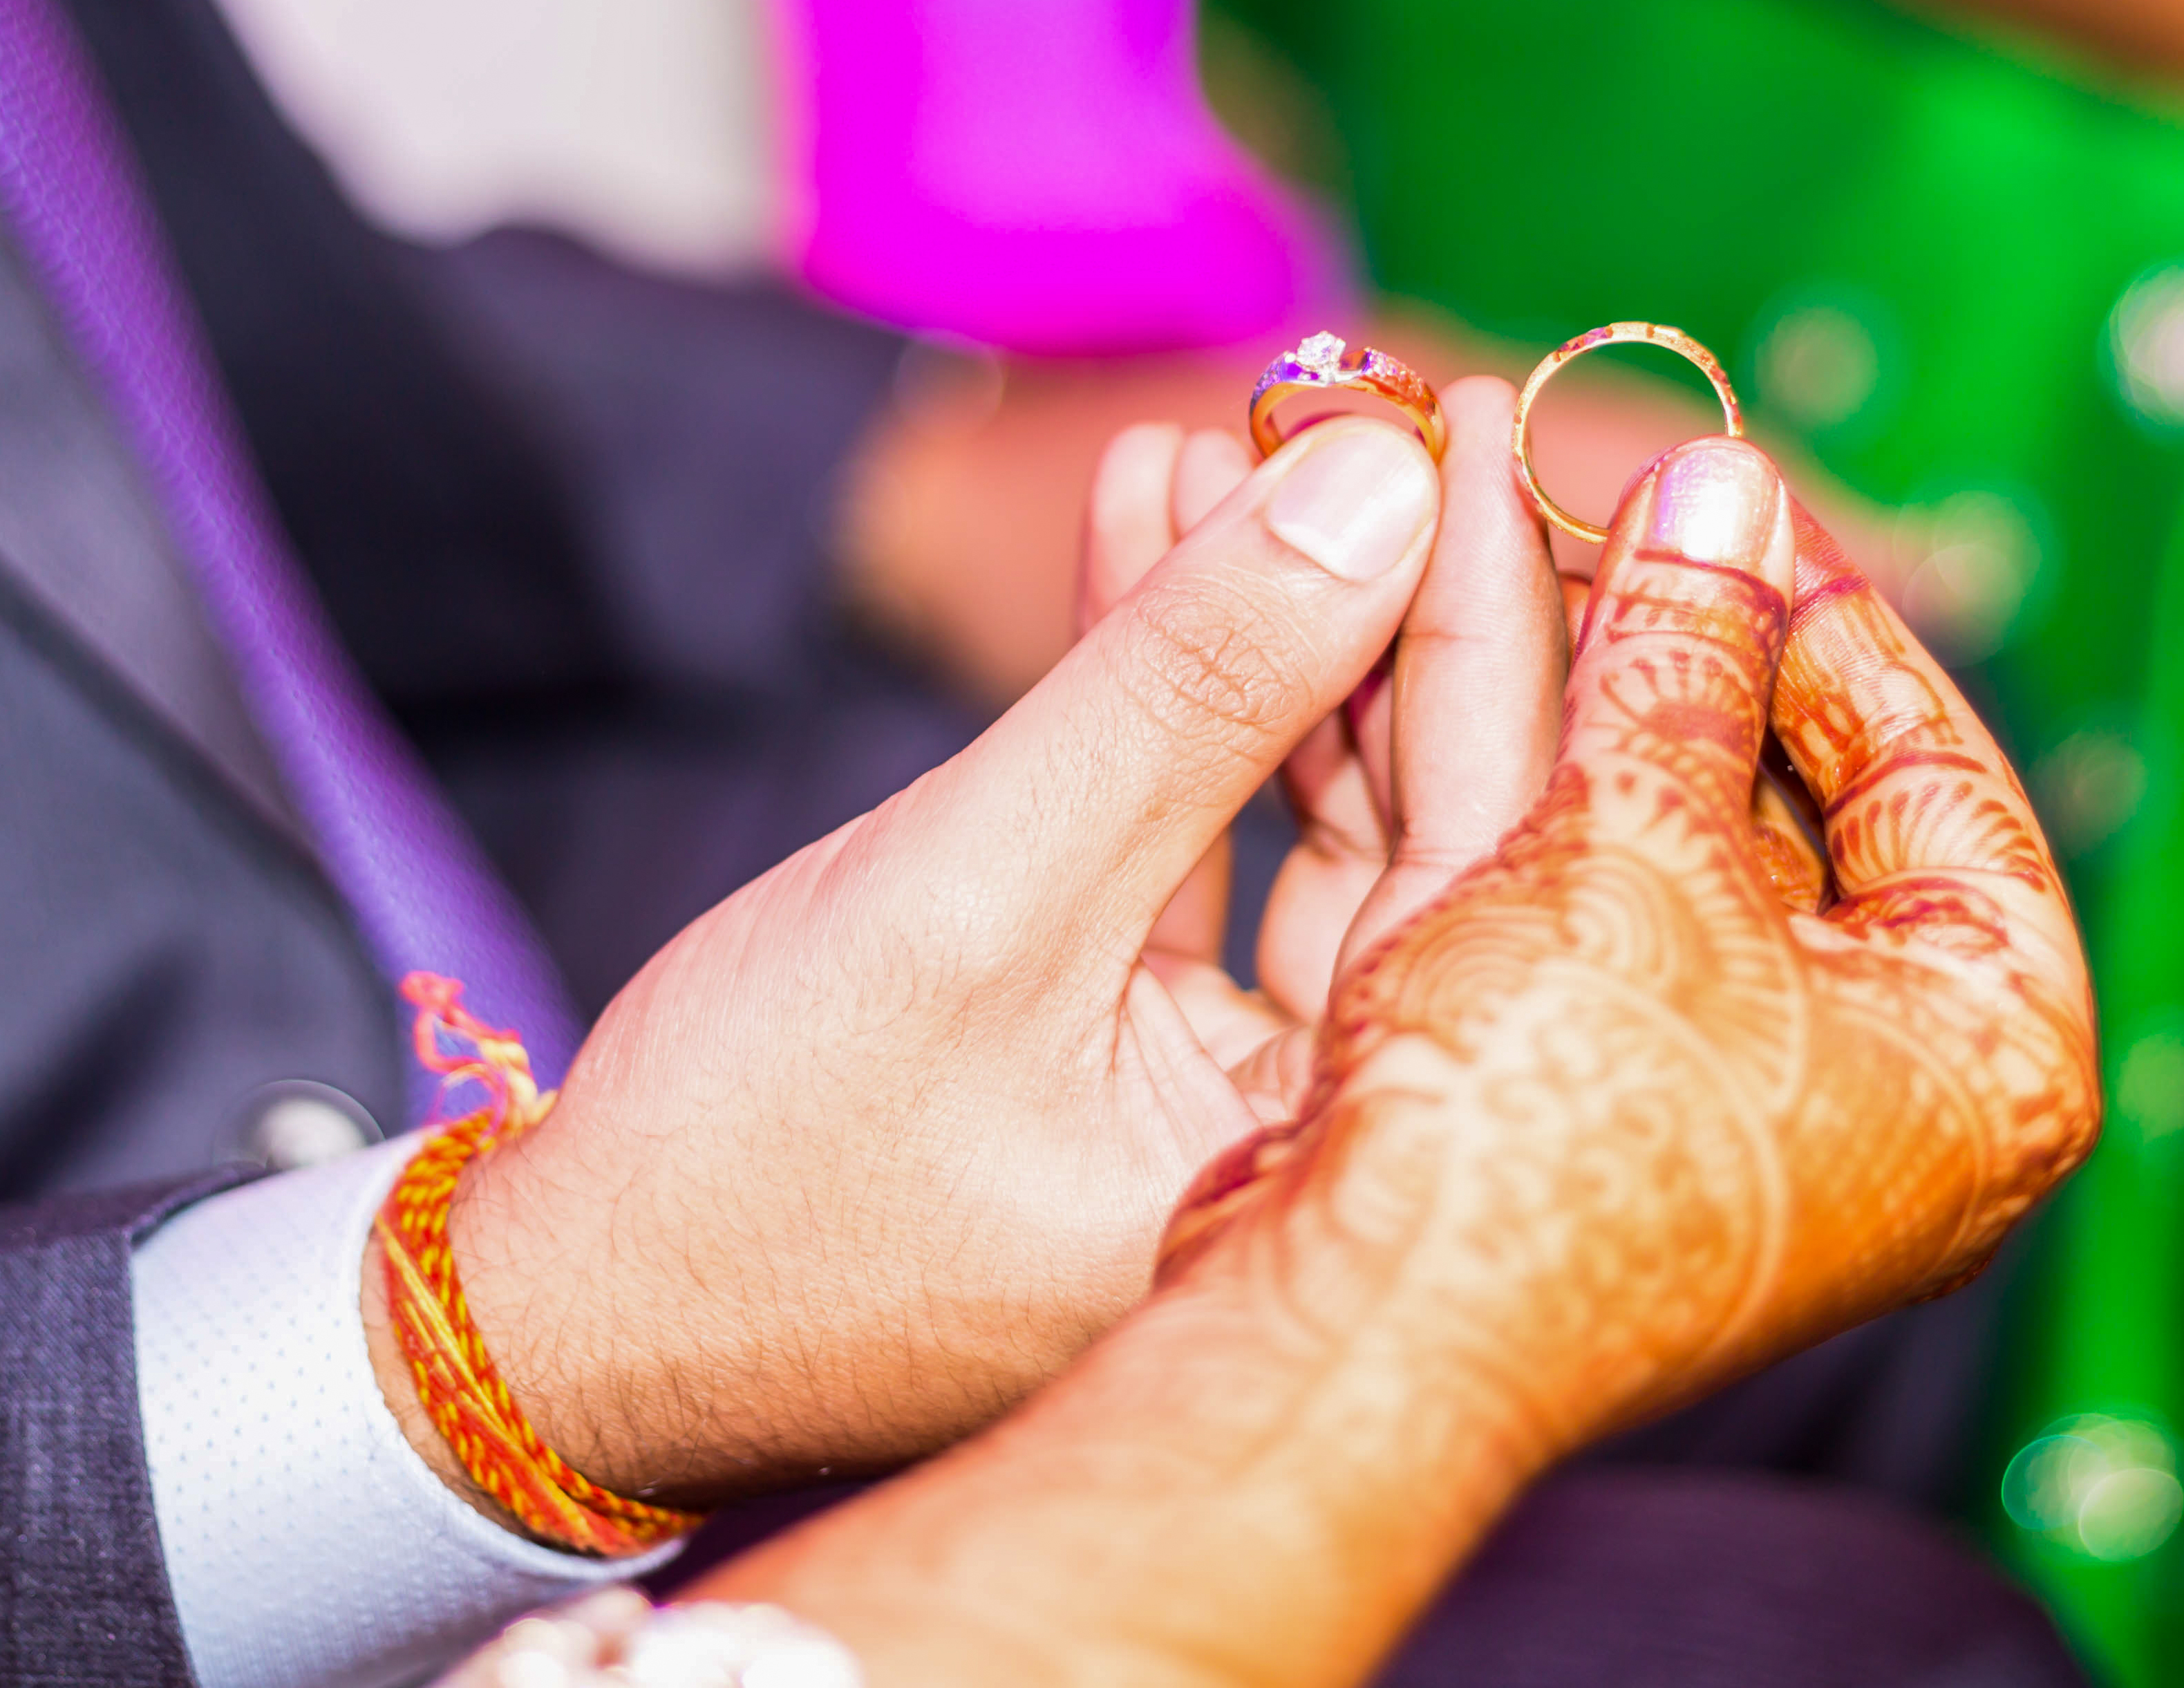 Indian wedding rings. Image credit: iStock